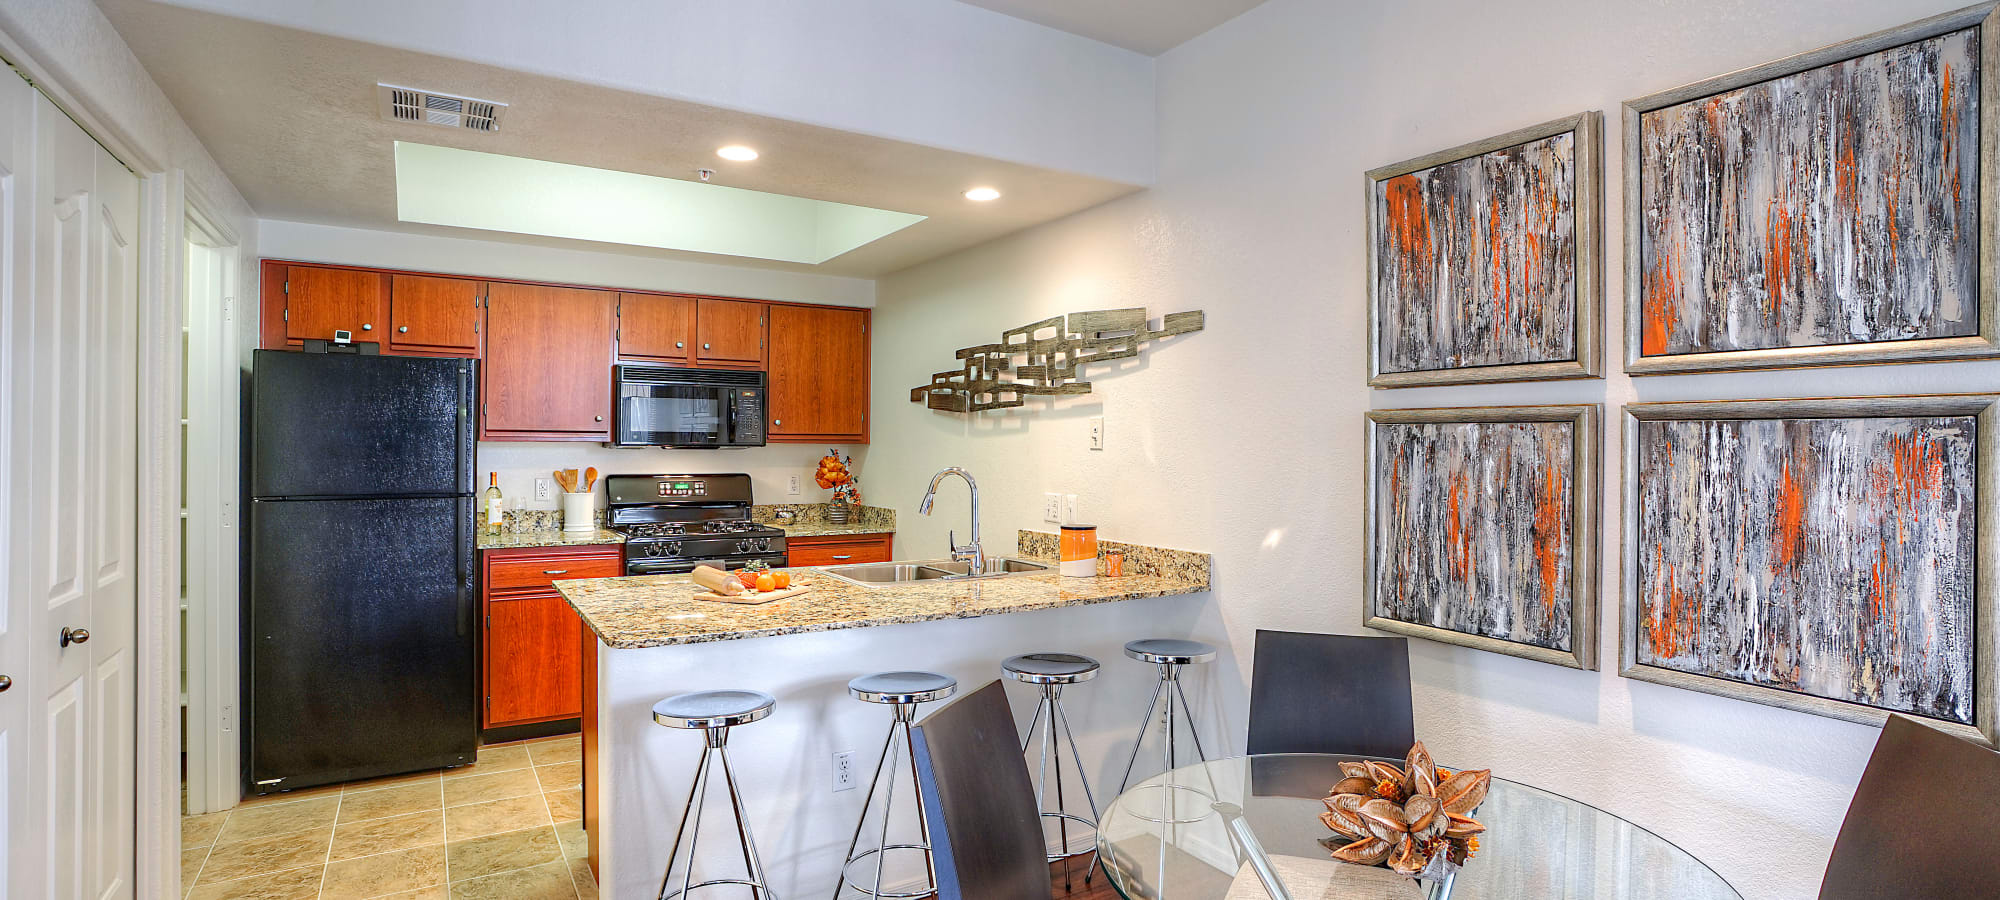 Kitchen with custom cabinetry and breakfast bar at San Palacio in Chandler, Arizona